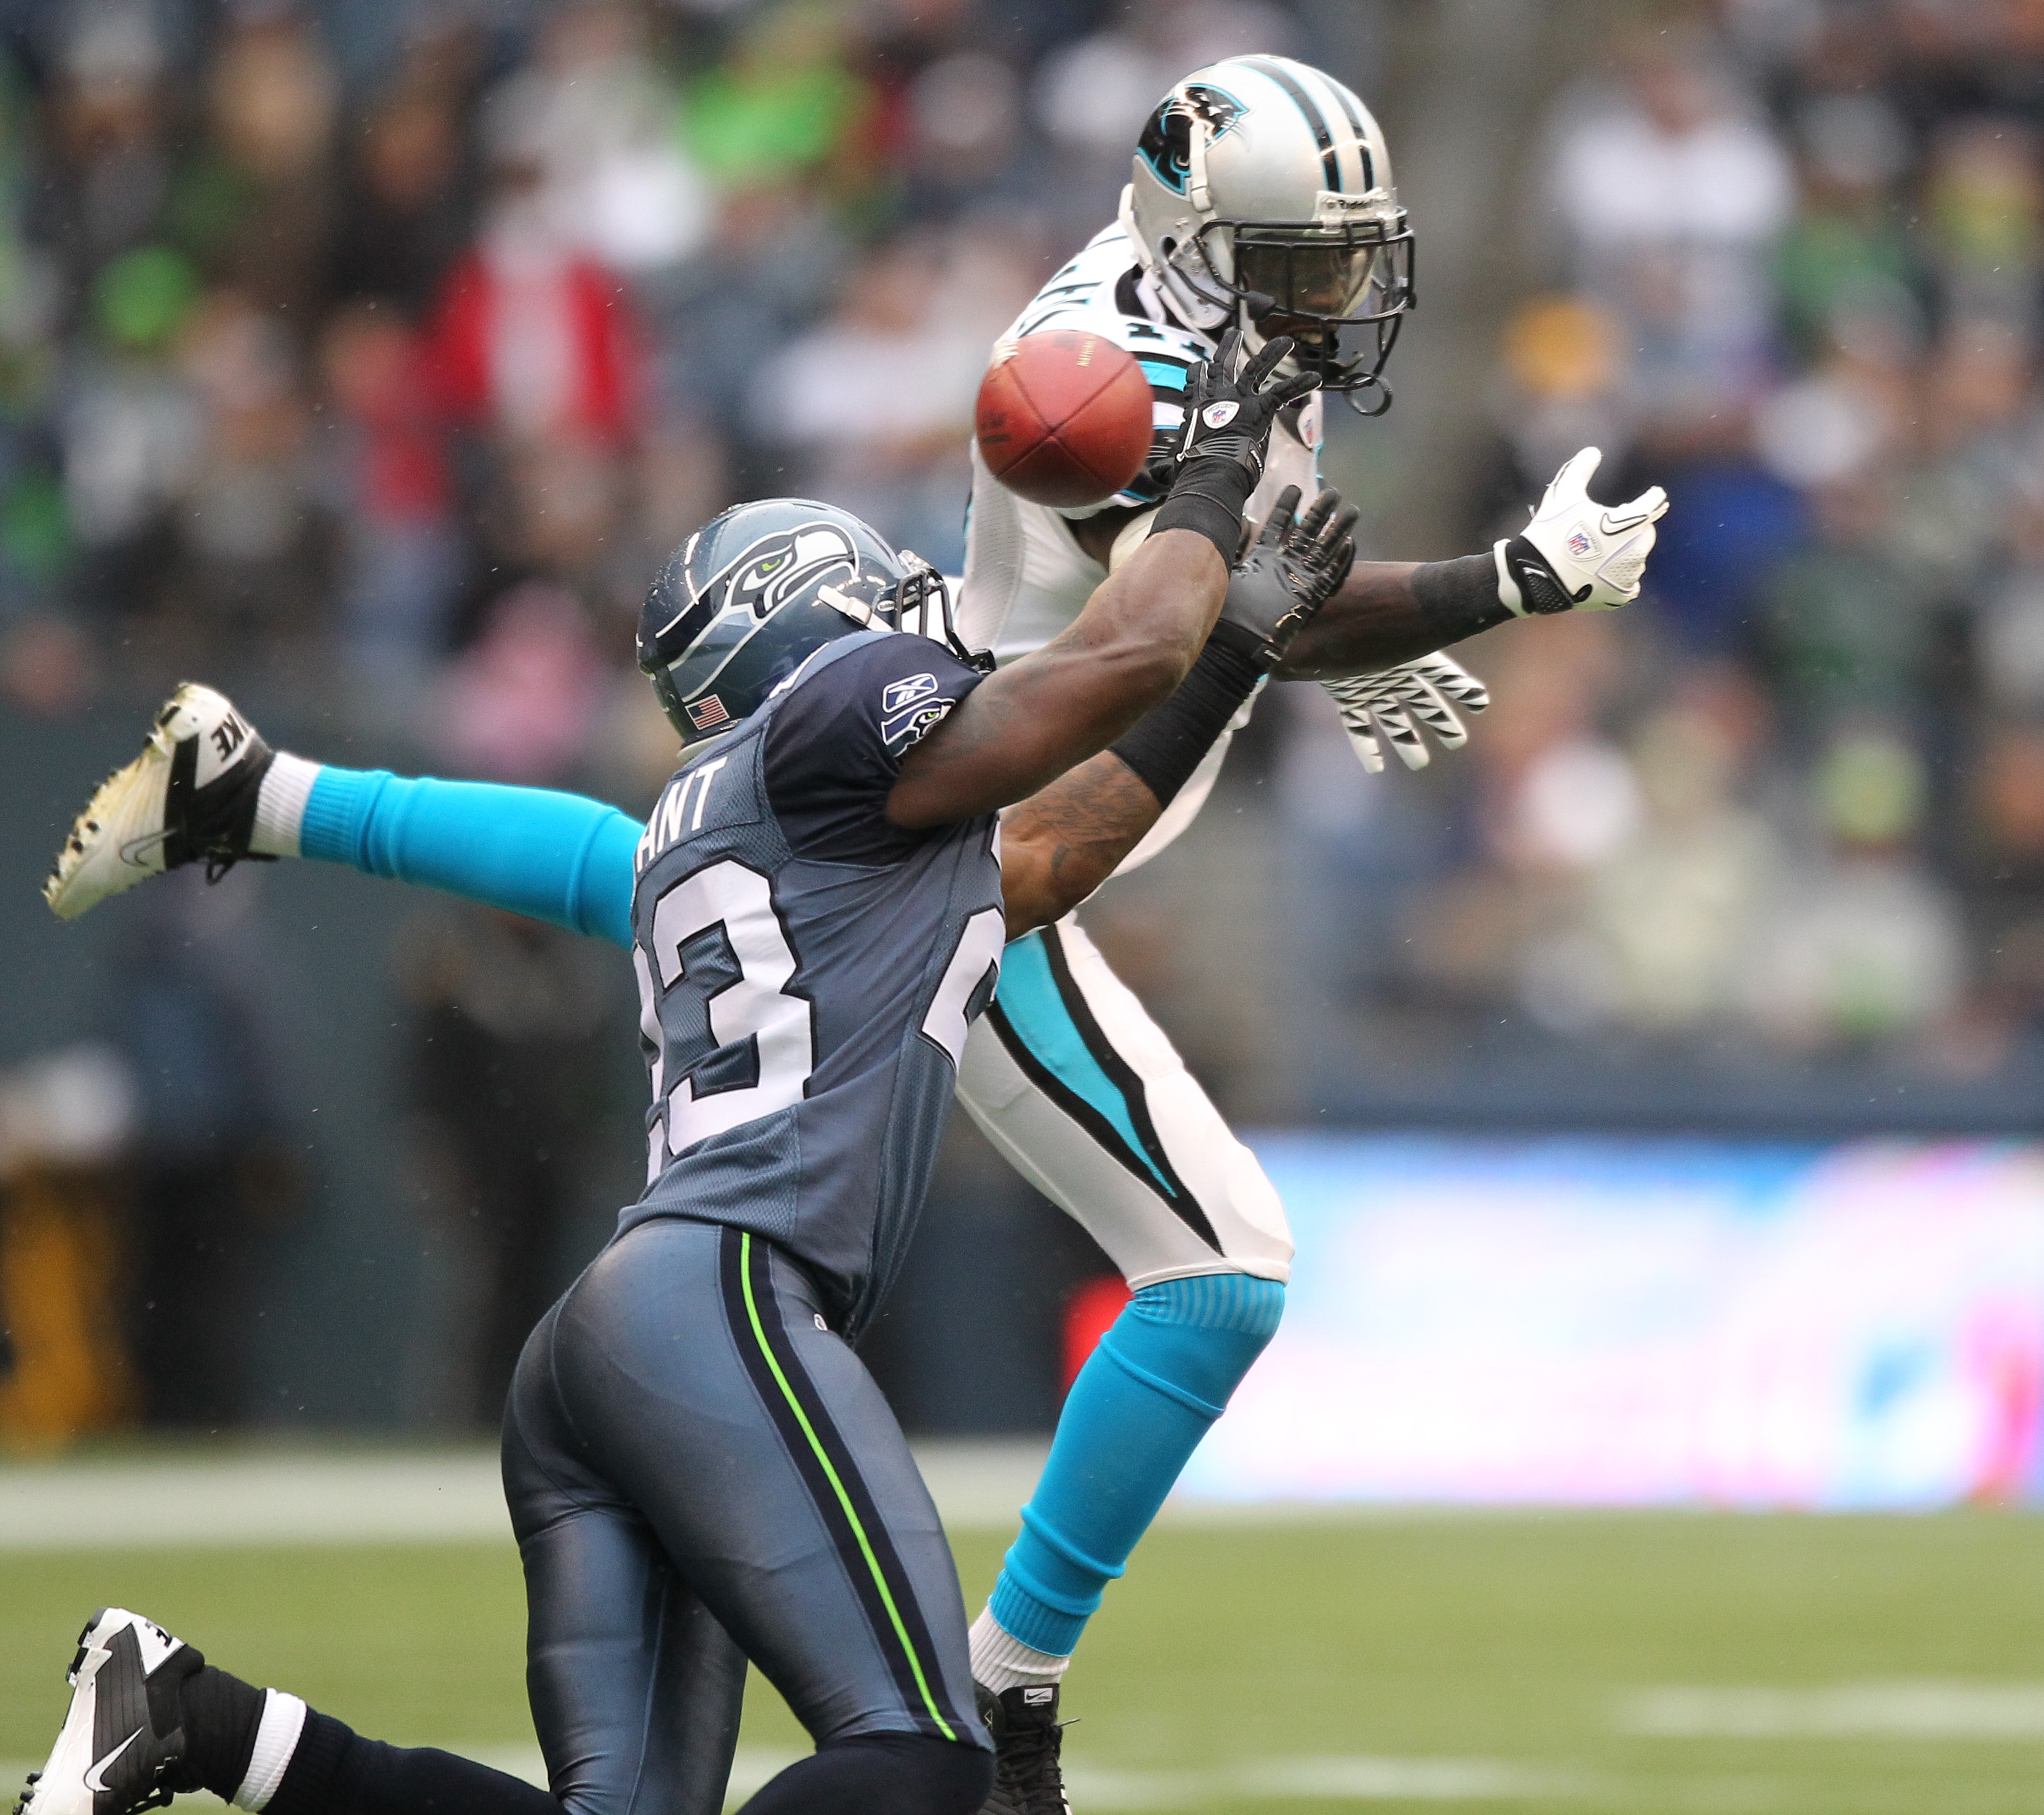 SEATTLE - DECEMBER 05:  Wide receiver Brandon LaFell #11 of the Carolina Panthers just misses this pass against Marcus Trufant #23 of the Seattle Seahawks at Qwest Field on December 5, 2010 in Seattle, Washington. The Seahawks won, 31-14. (Photo by Otto G